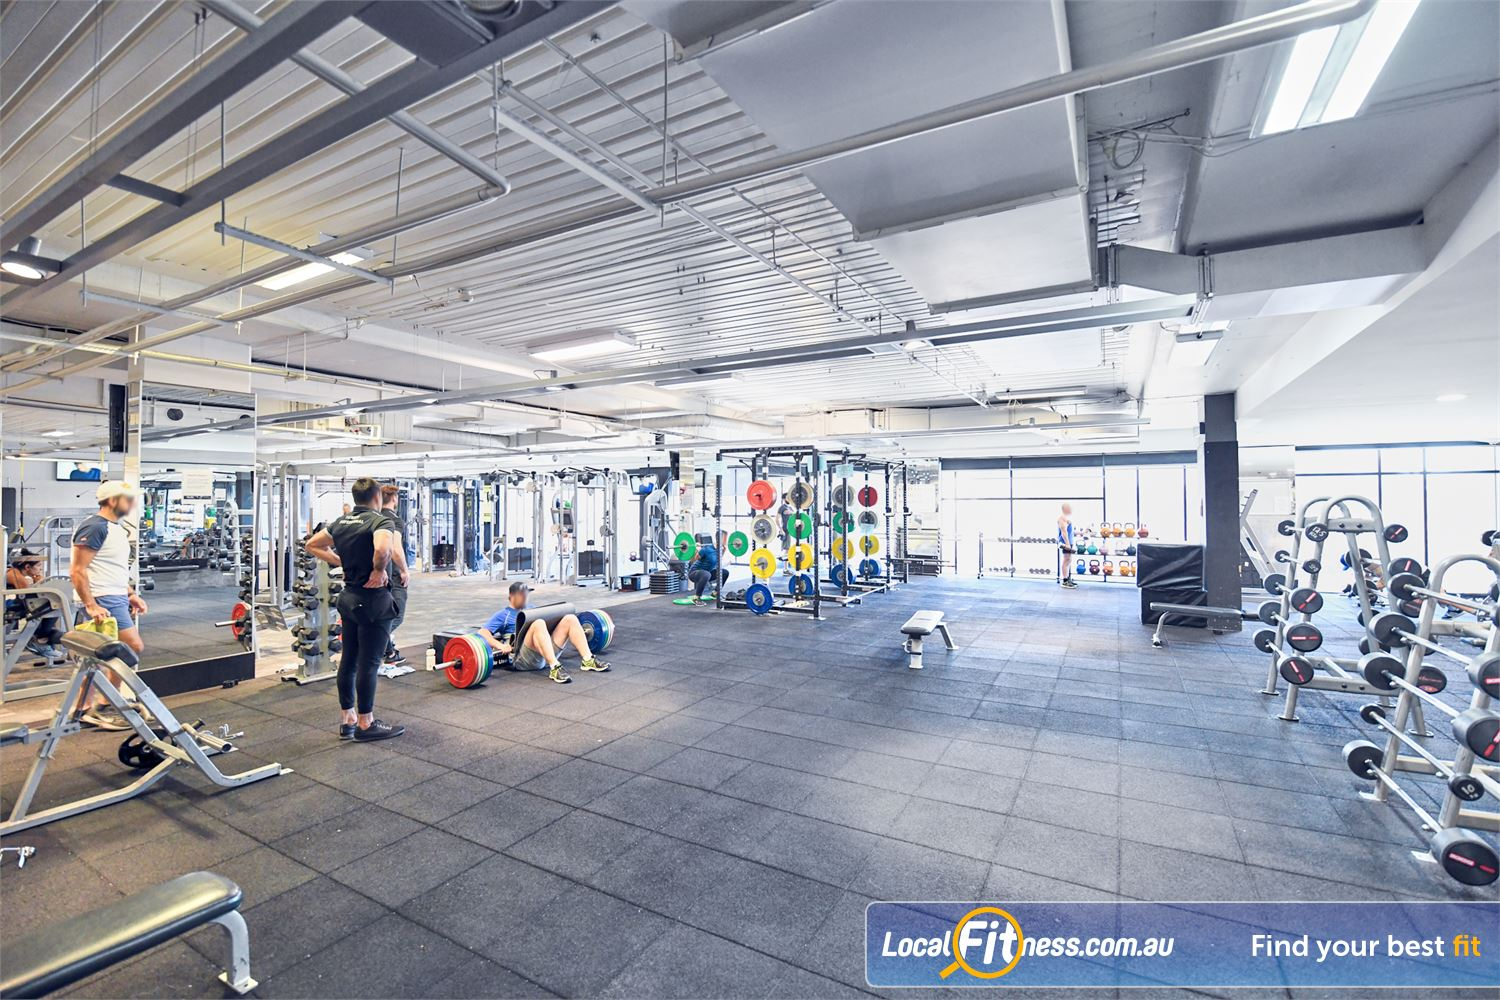 Goodlife Health Clubs Port Melbourne Welcome to Goodlife Port Melbourne gym.